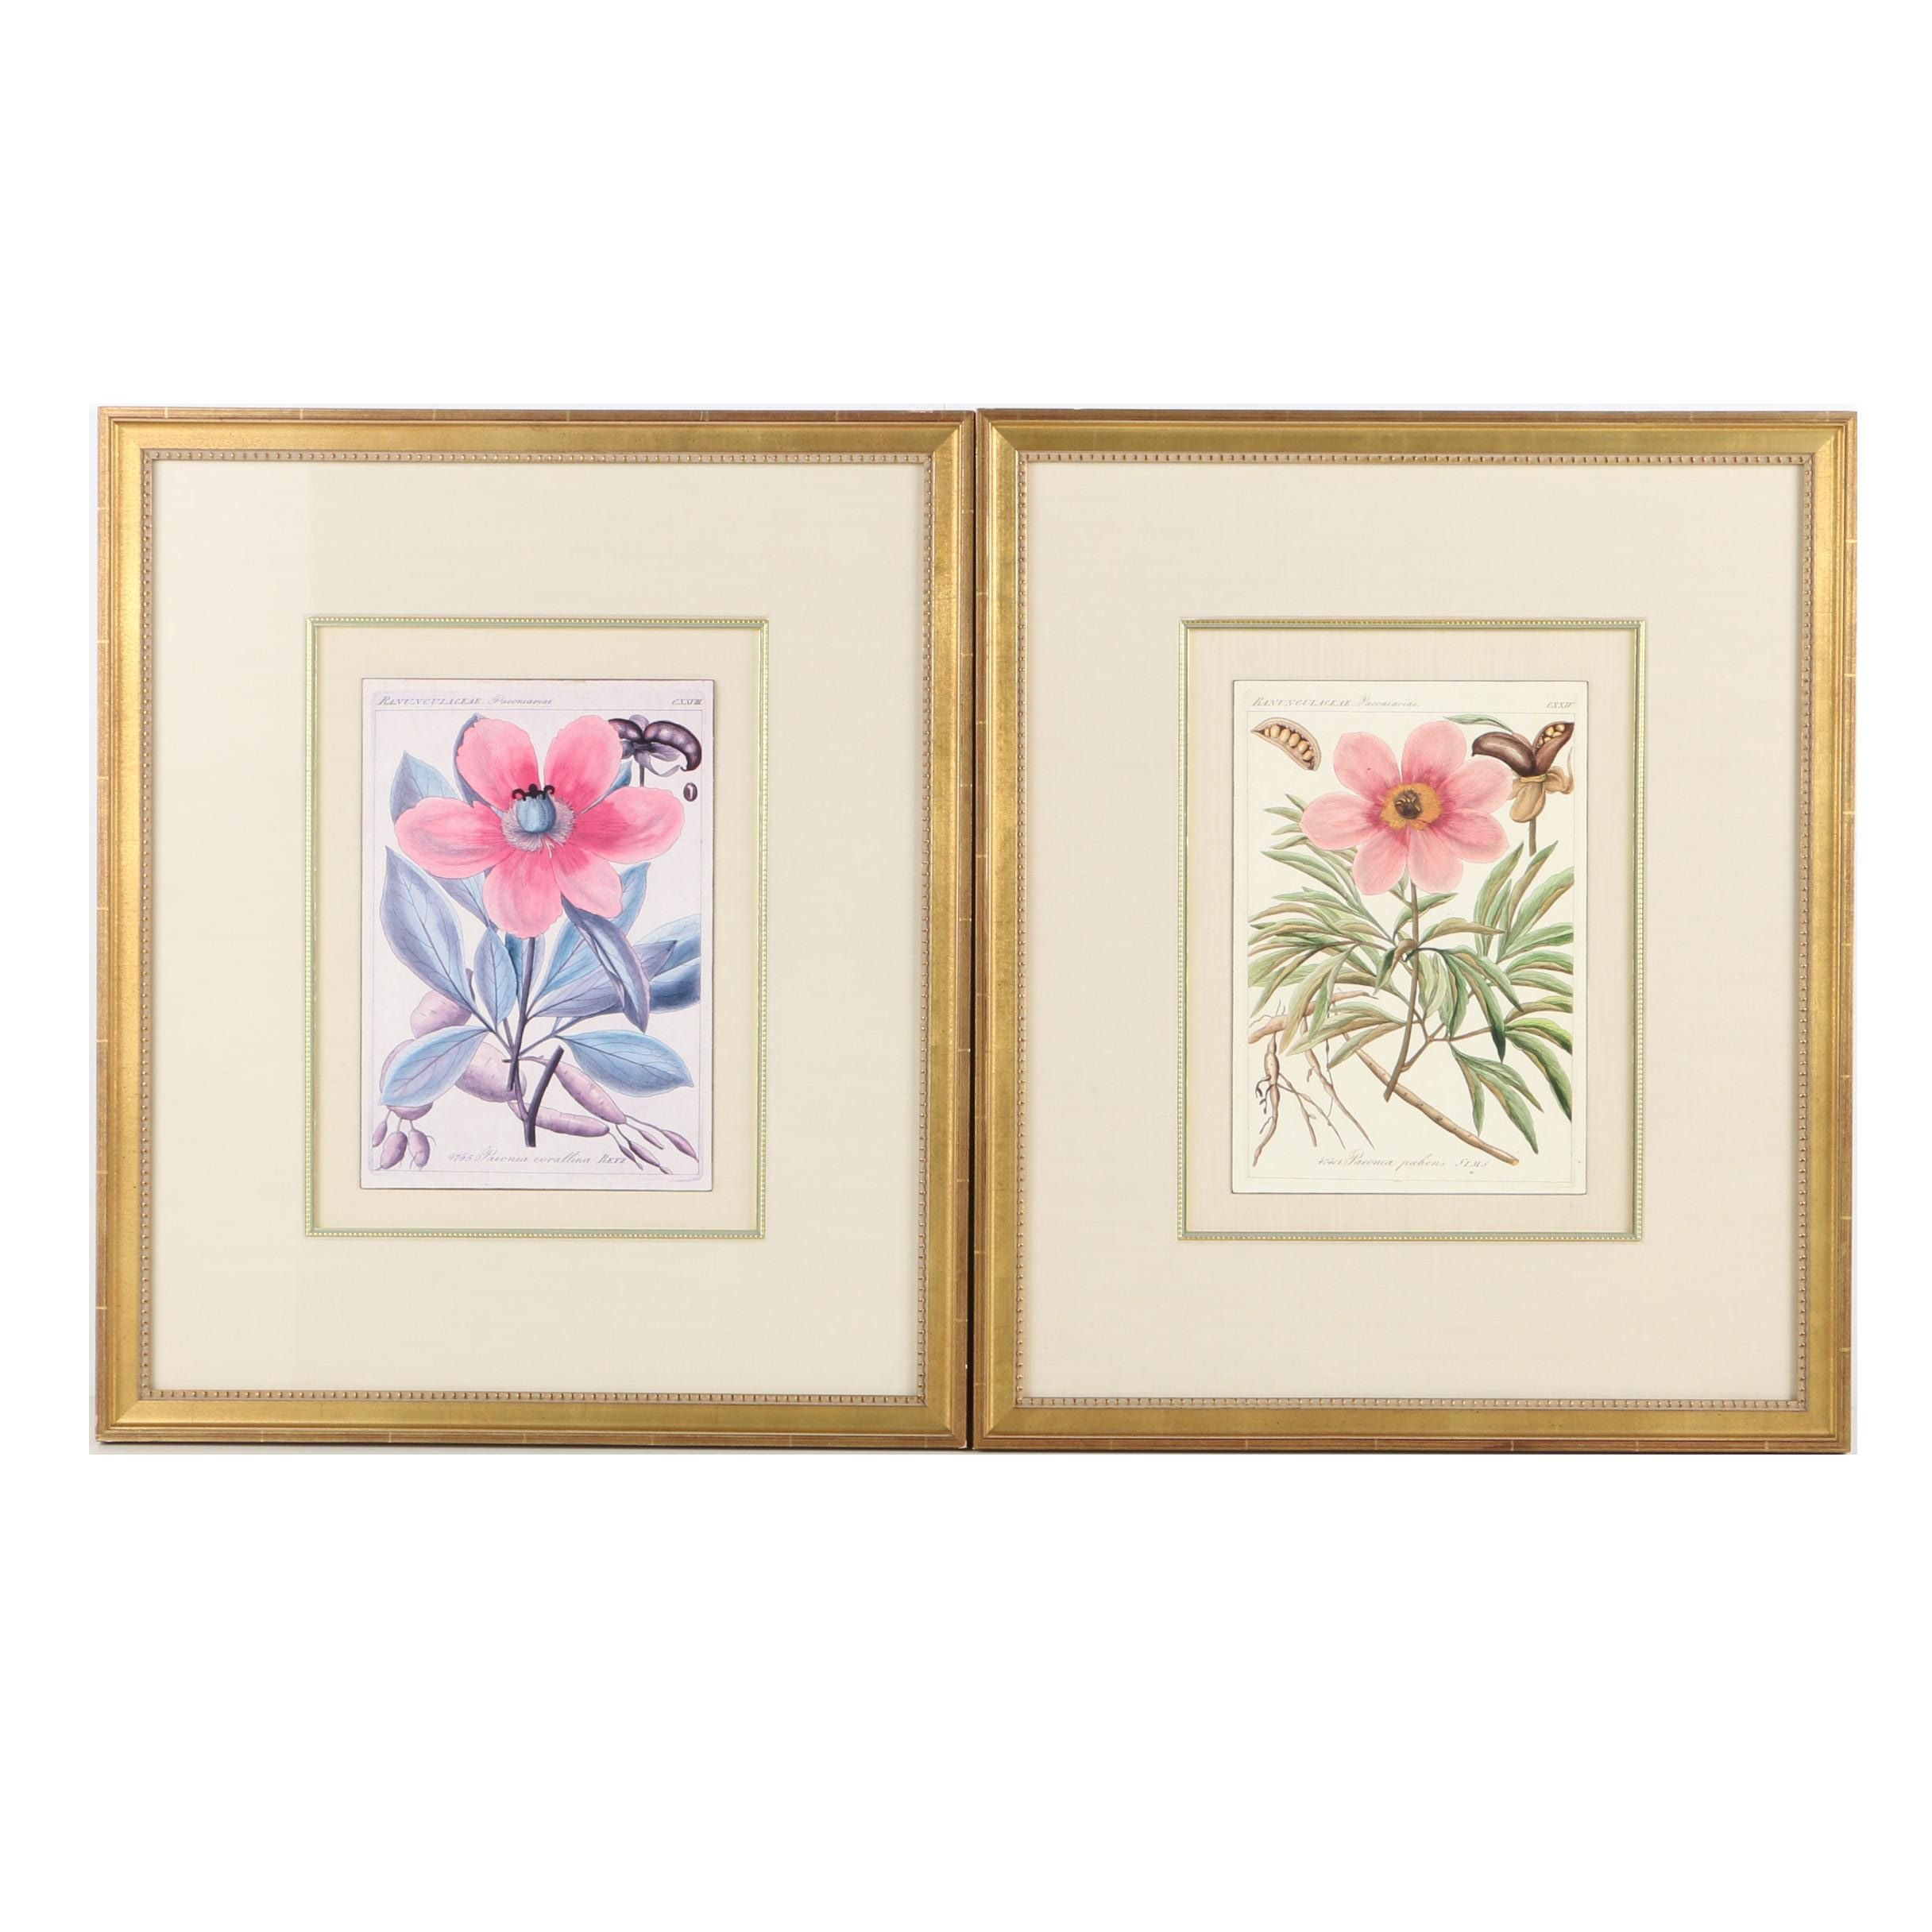 Offset Lithographs on Paper of Peonies